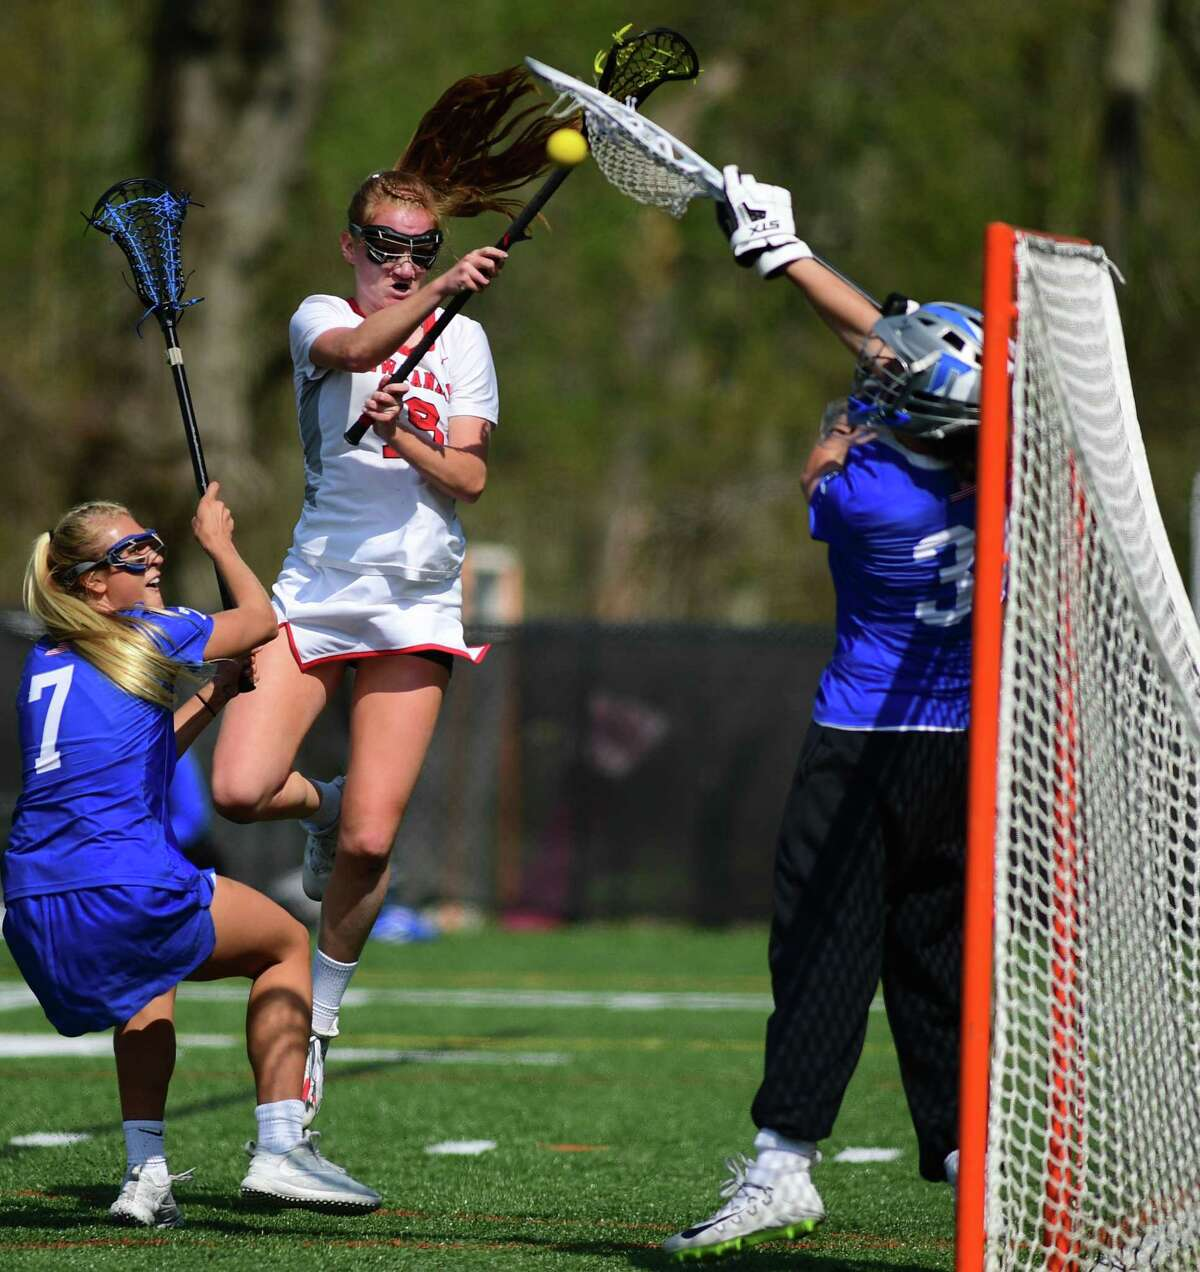 Blue Wave #7 and Goalie Shea Dolce defend agains Rams #19 Jane Charlton The No. 1 Darien High School Blue Wave takes on the New Canaan Highh School Rams in their FCIAC girls lacrosse game Saturday. May 4, 2019, in New Canaan, Conn. New Canaan girls lacrosse team defeated the rival Darien Blue Wave 12-11 in the Class L semifinals last spring.